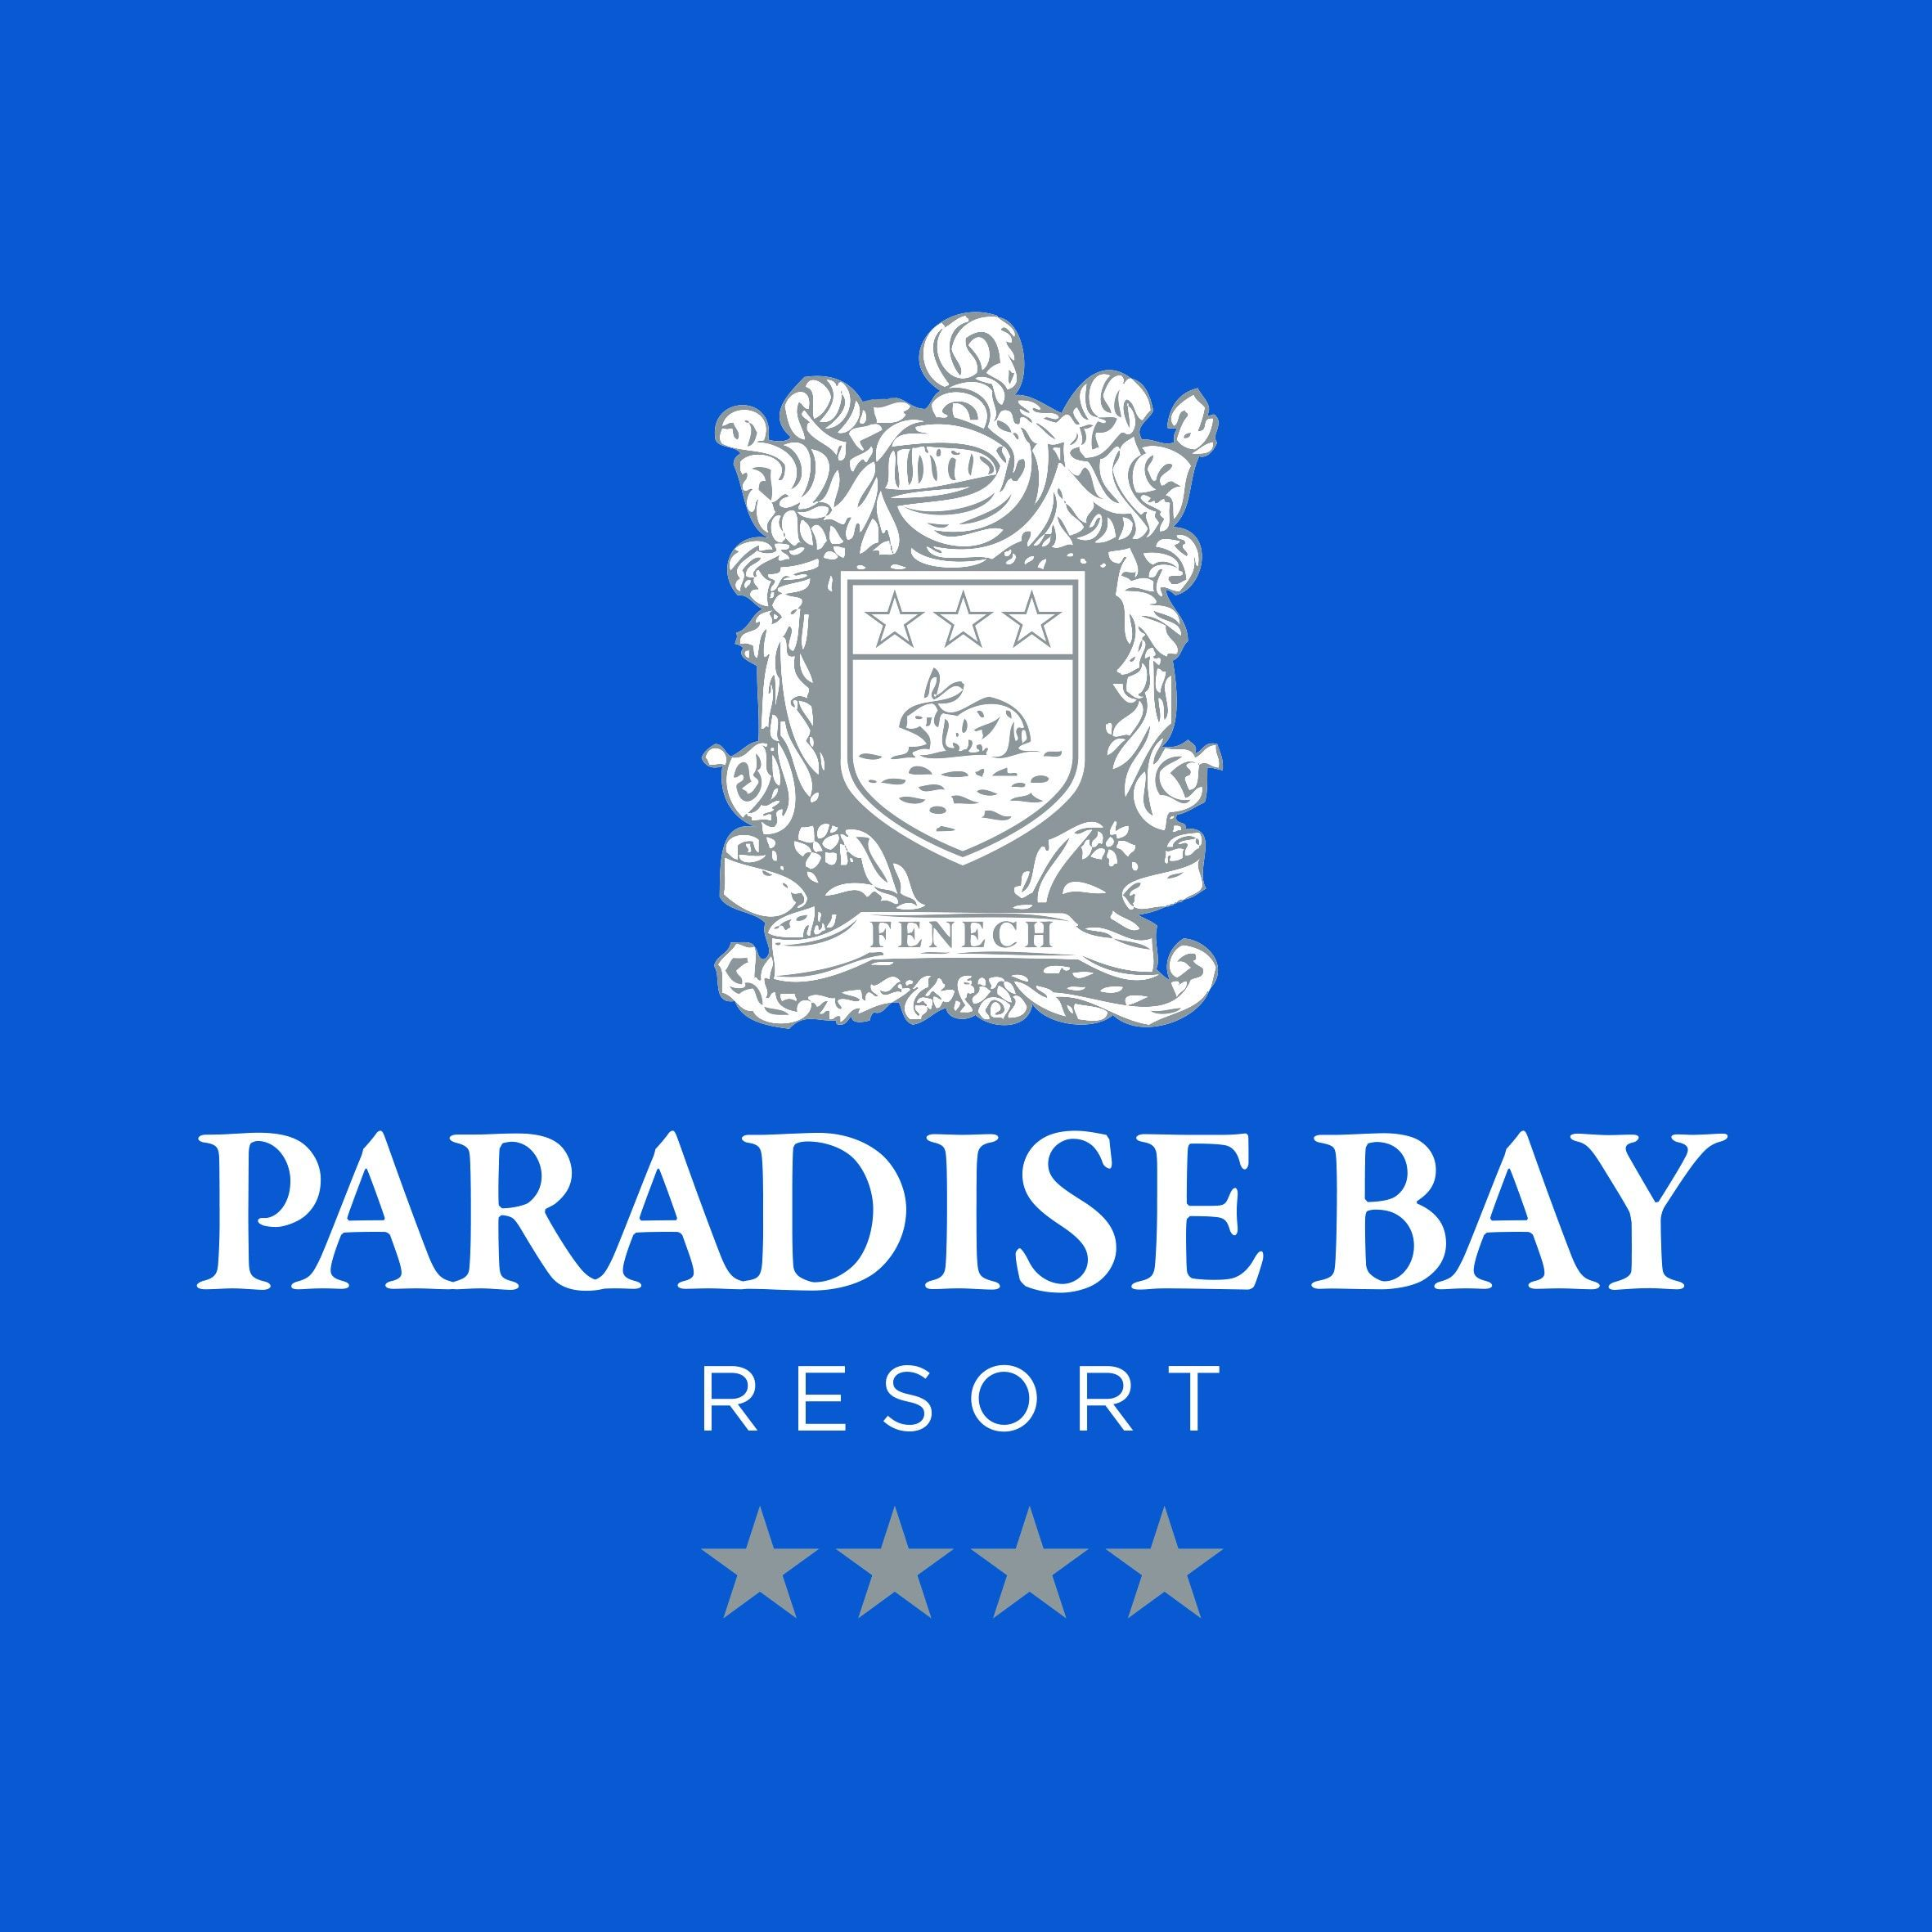 Paradise Bay Resort Hotel <span class='star'>*</span><span class='star'>*</span><span class='star'>*</span><span class='star'>*</span>